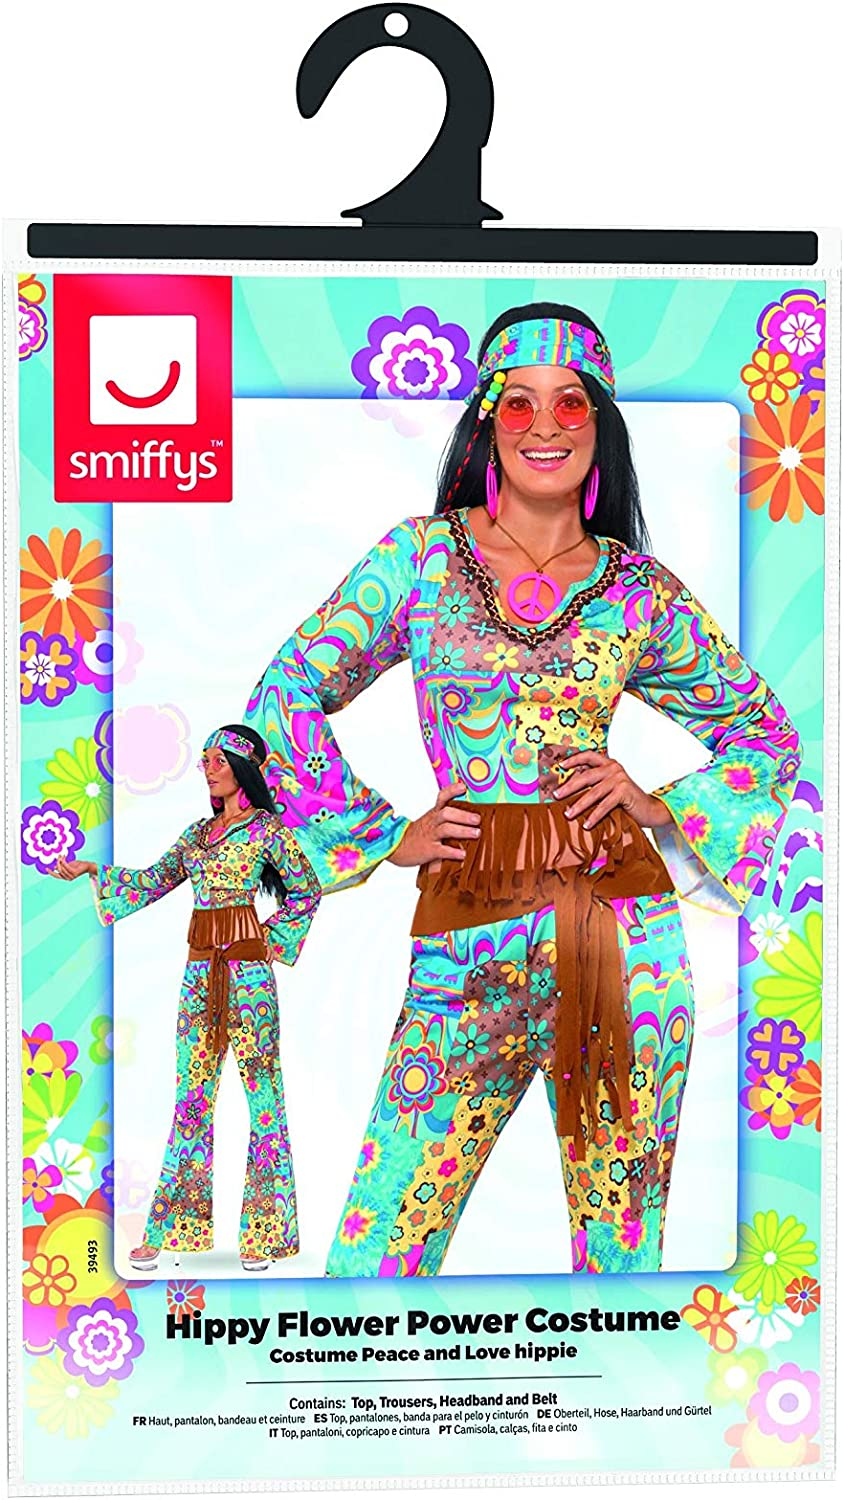 Dancing Flower Kit Comedy Adult Unisex Smiffys Fancy Dress Costume Accessory